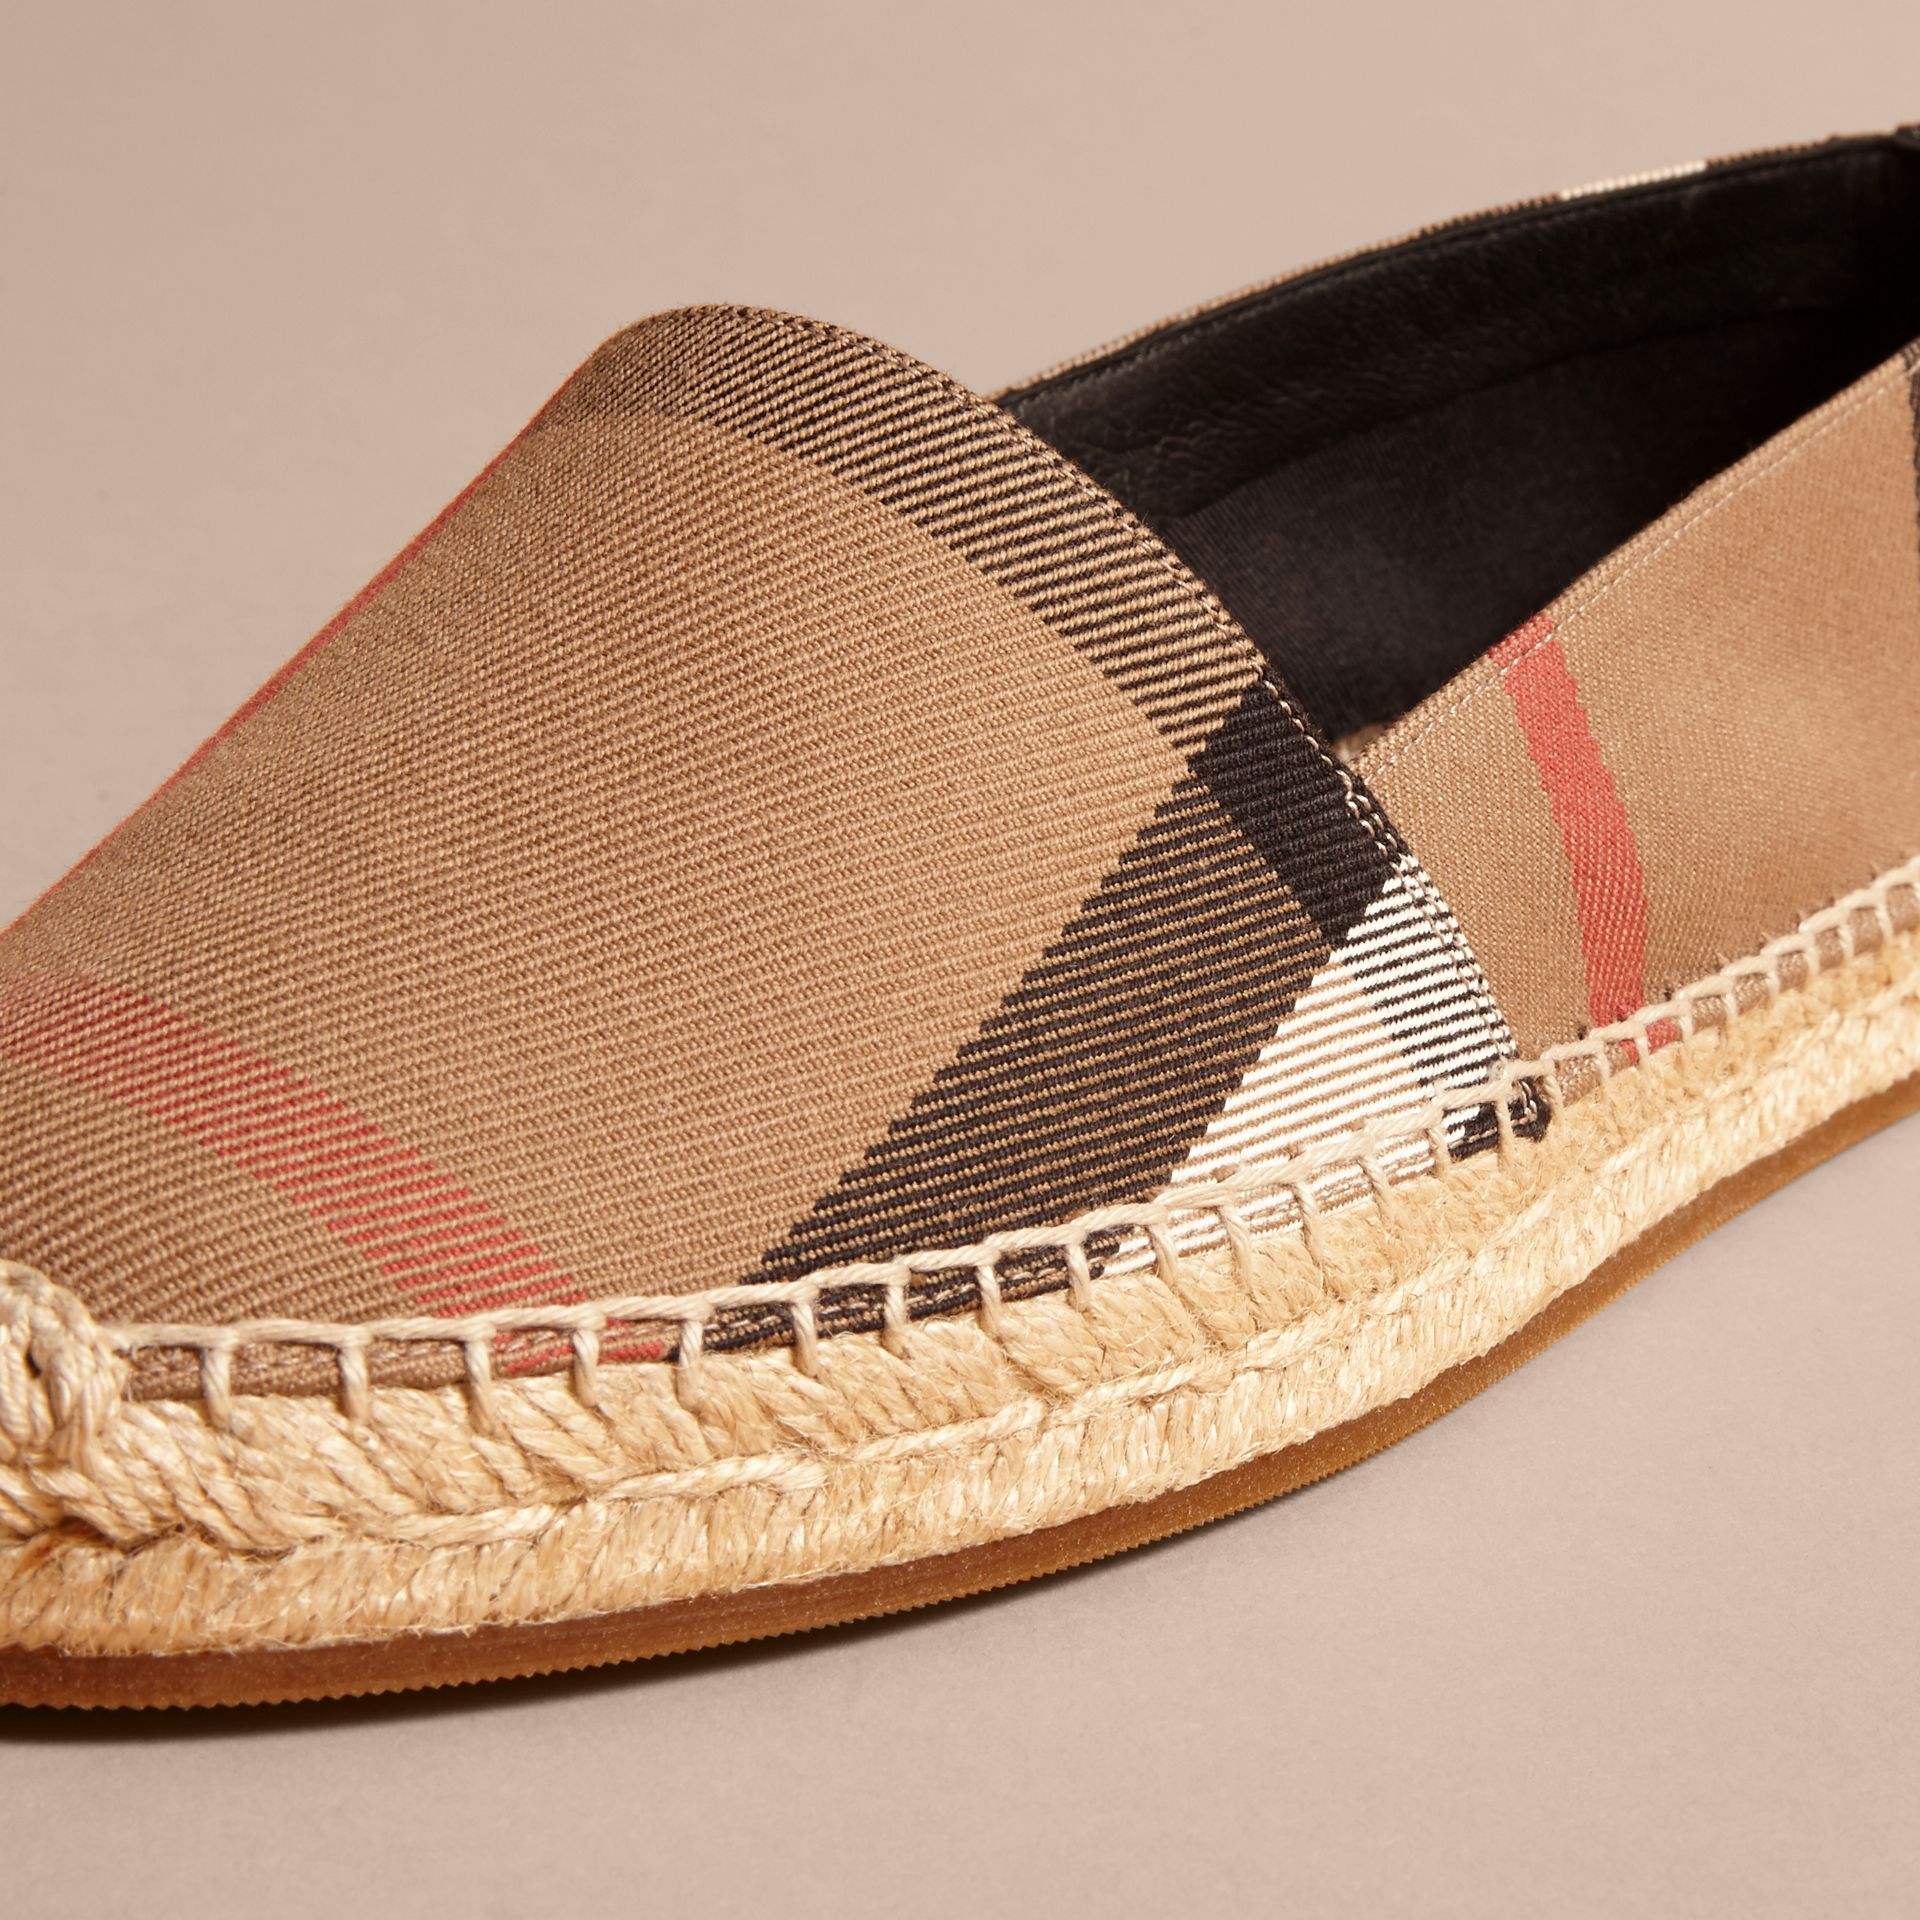 Leather Trim Canvas Check Espadrilles in Classic - Women | Burberry United Kingdom - gallery image 2